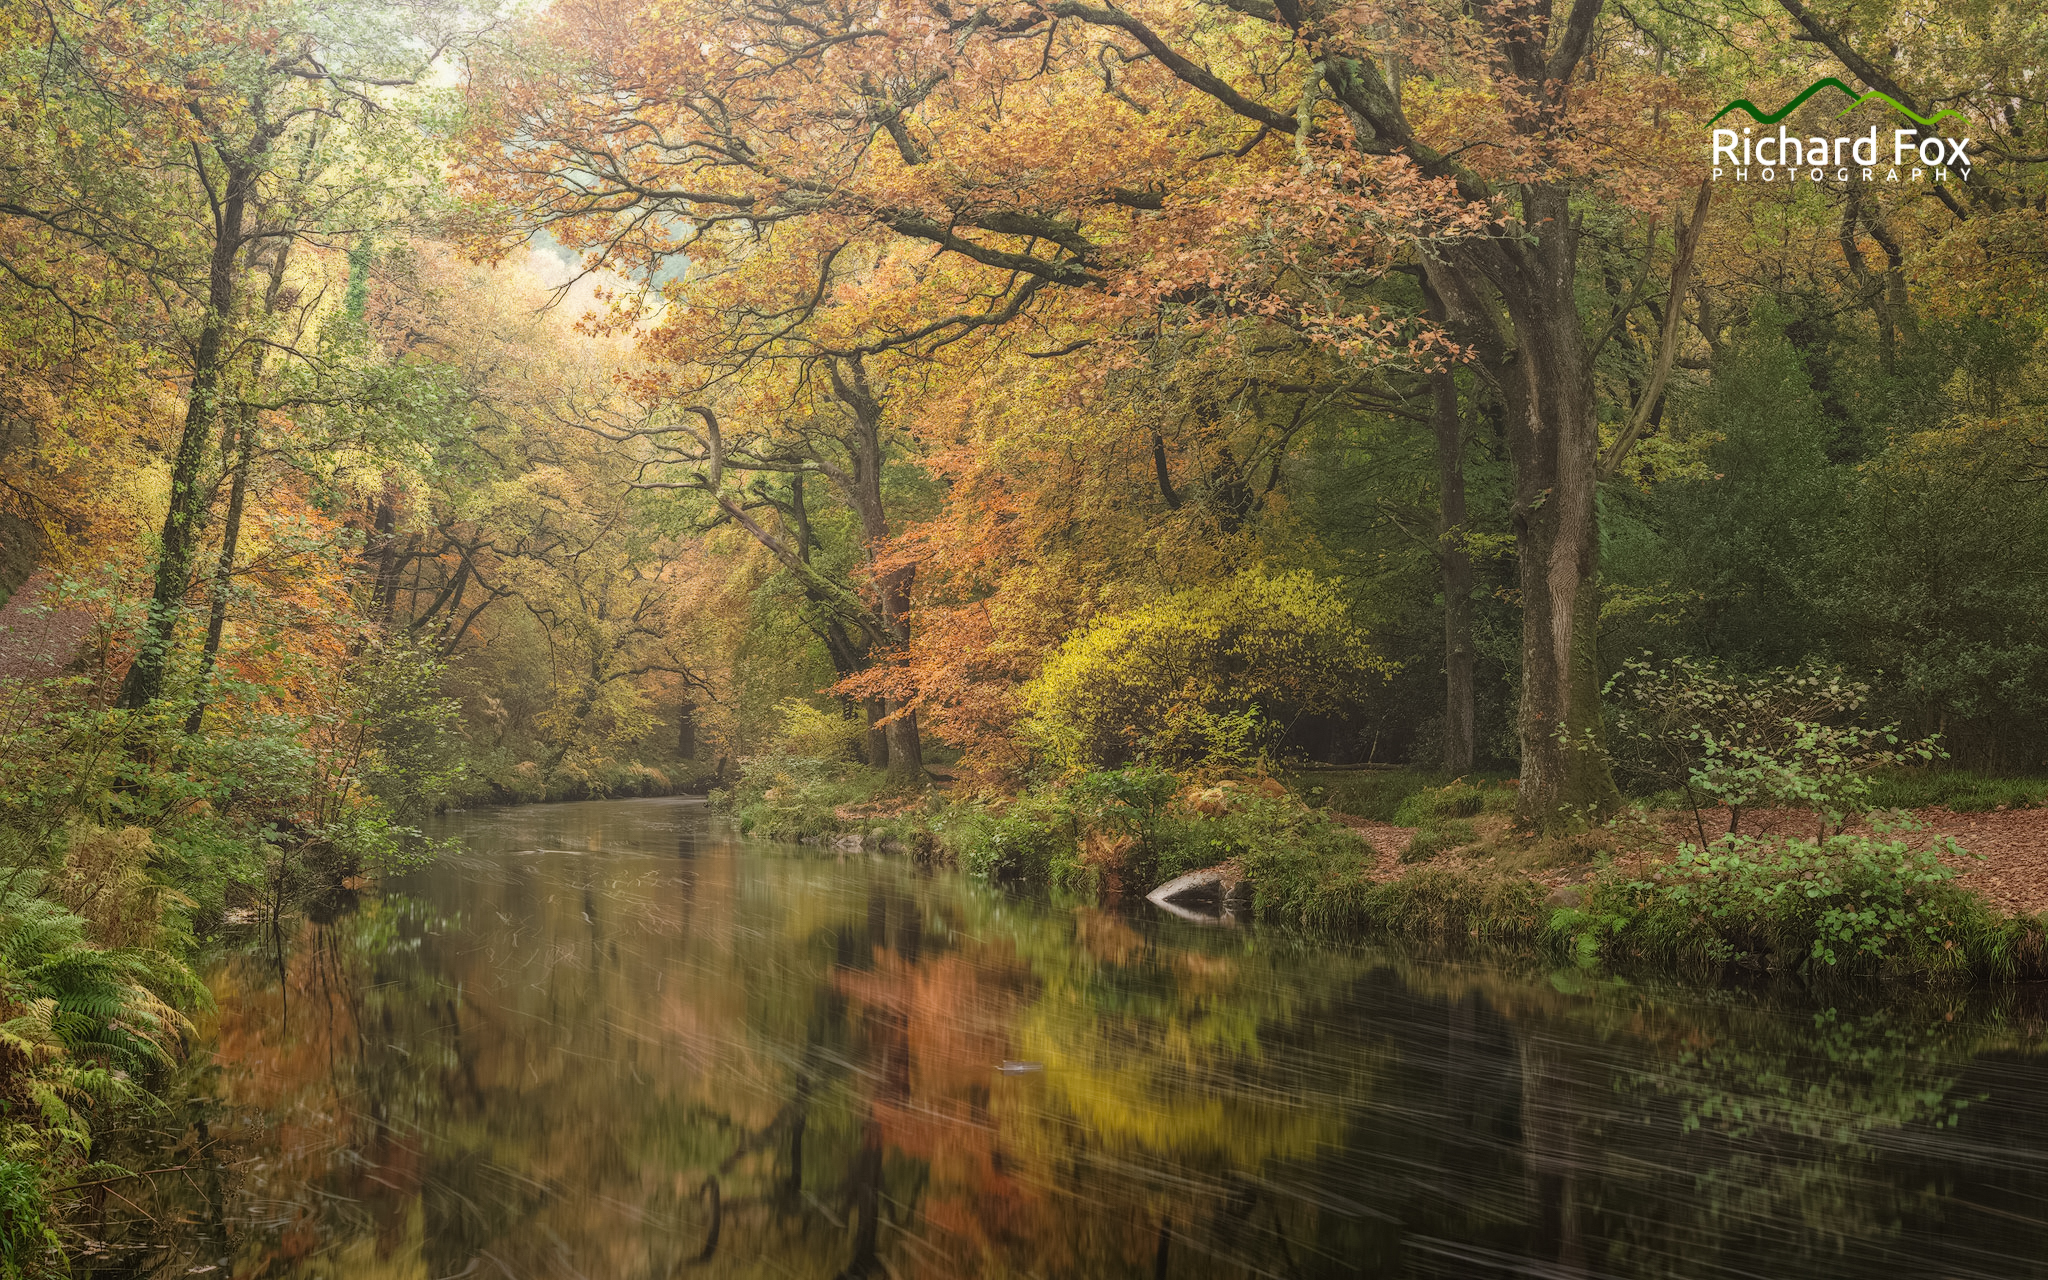 Teign Colourings, River Teign at Fingle Bridge - A well shot location but with my own style.